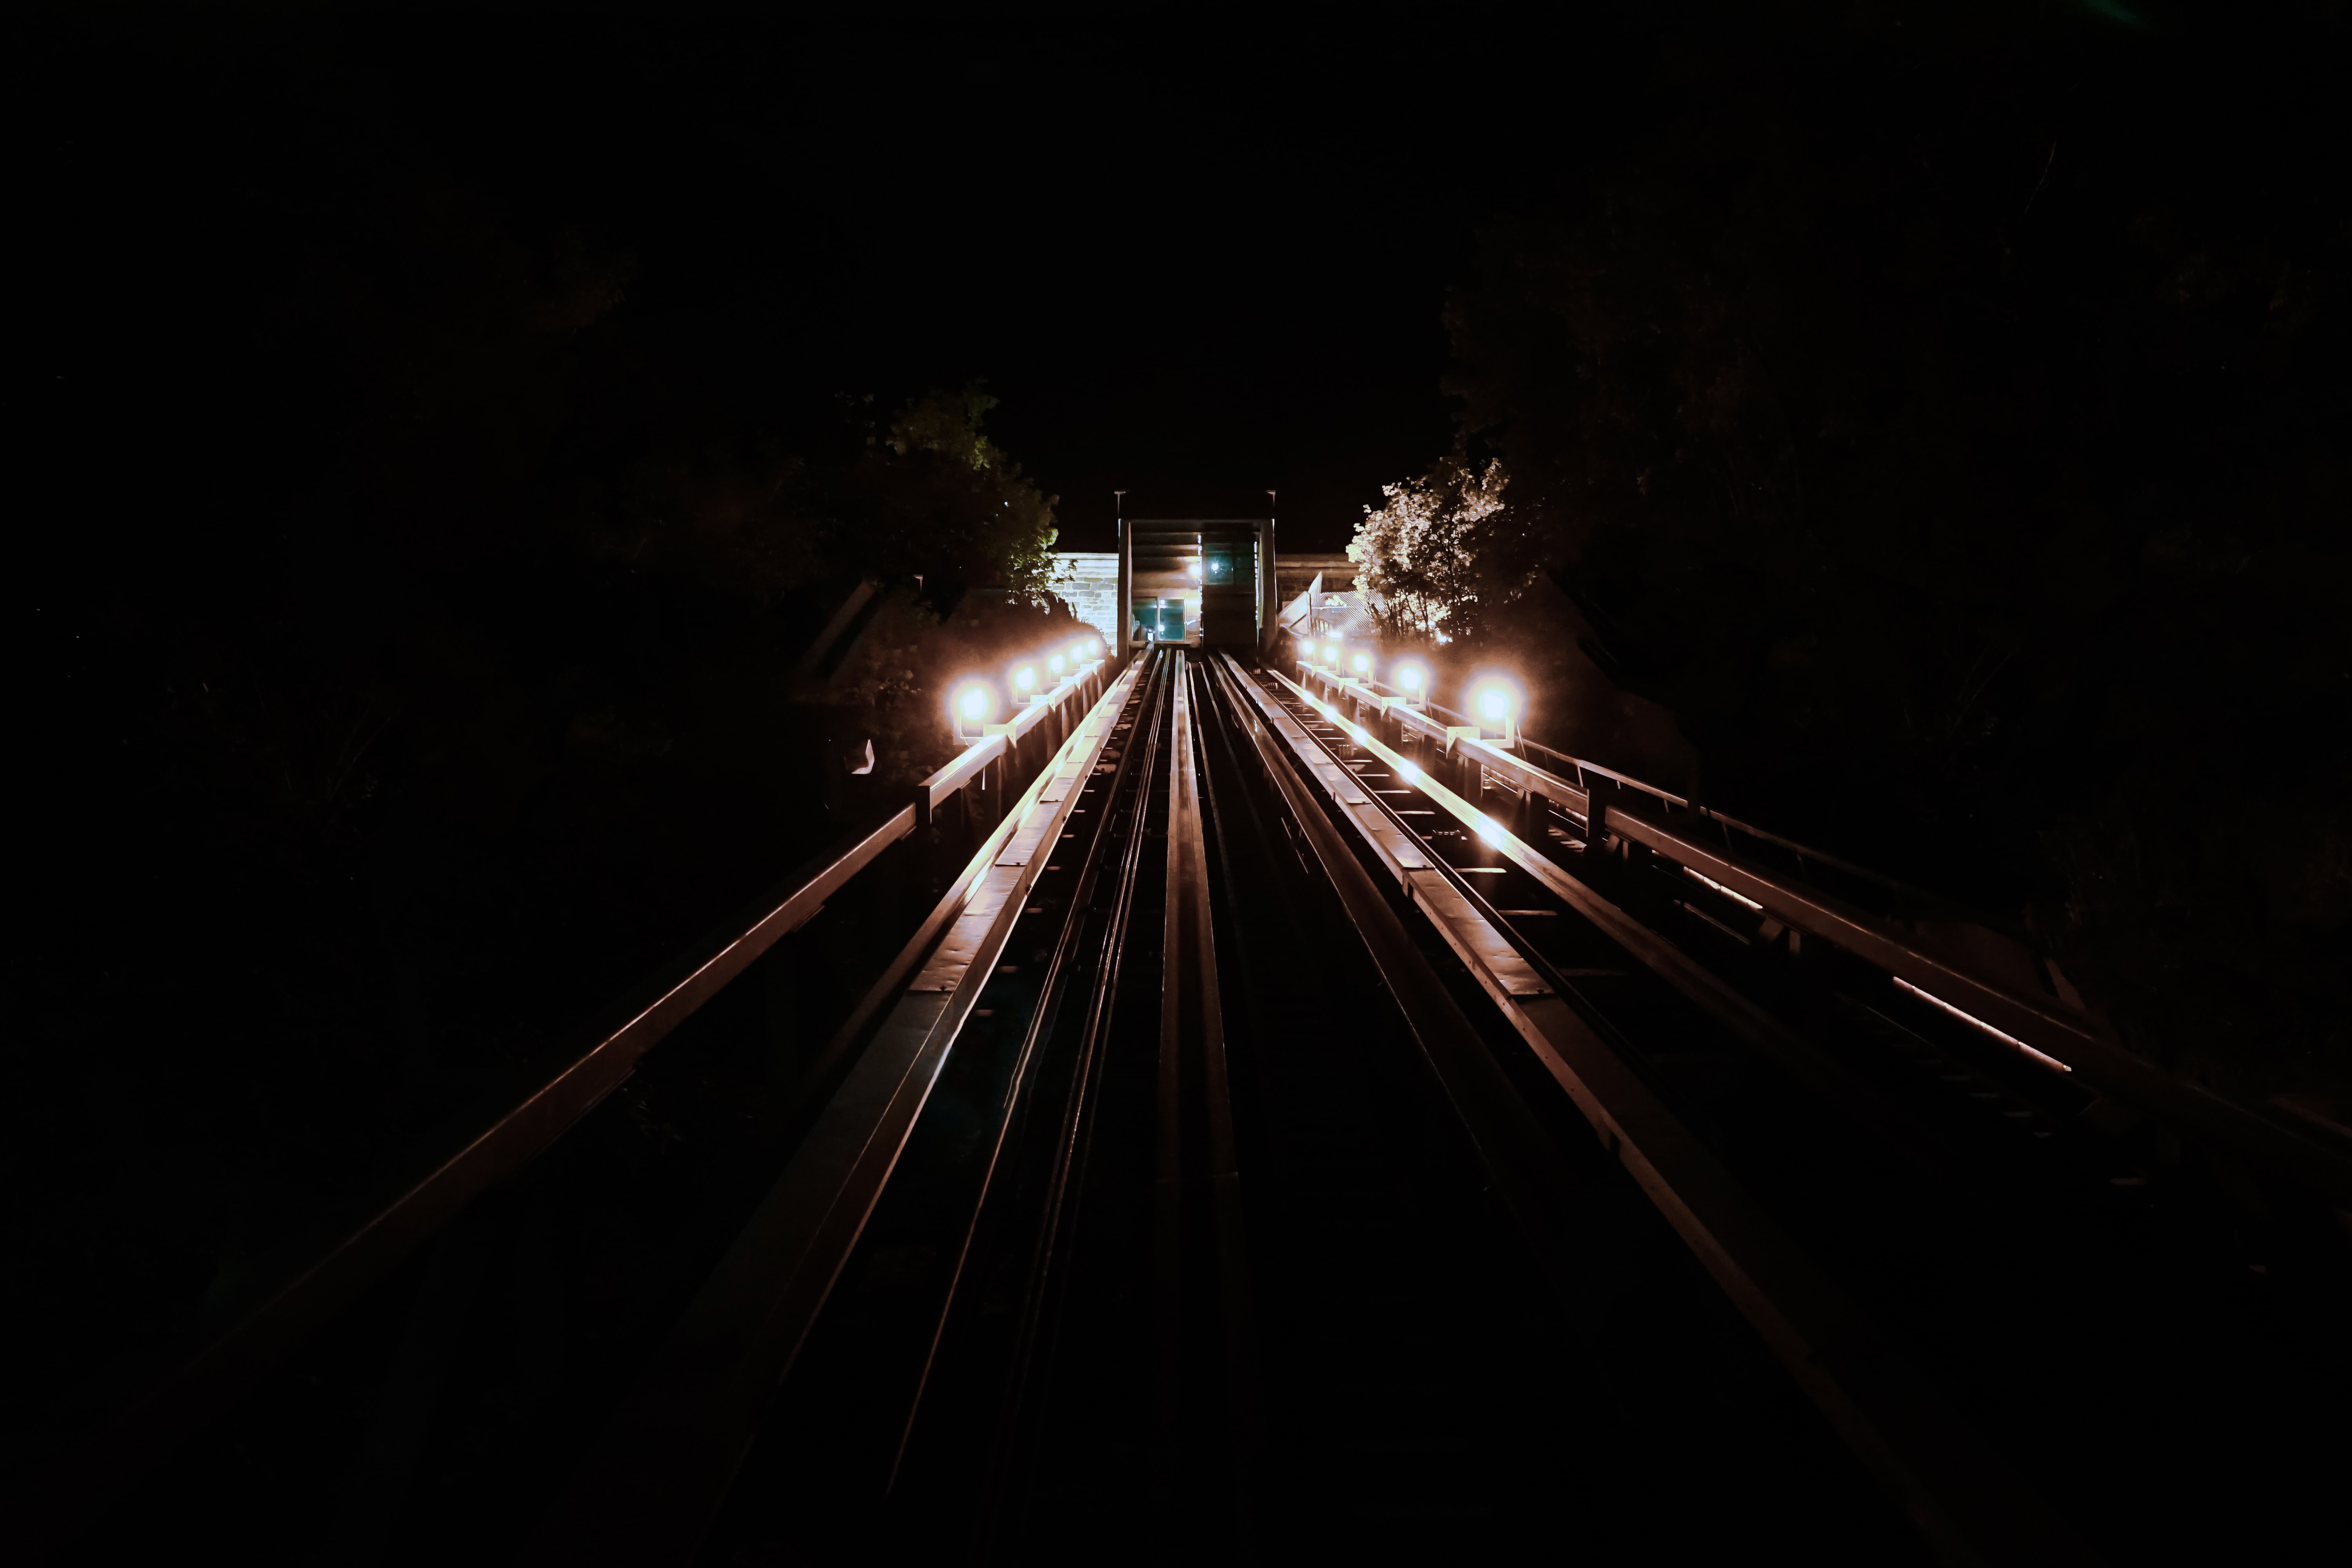 train track with light at night time